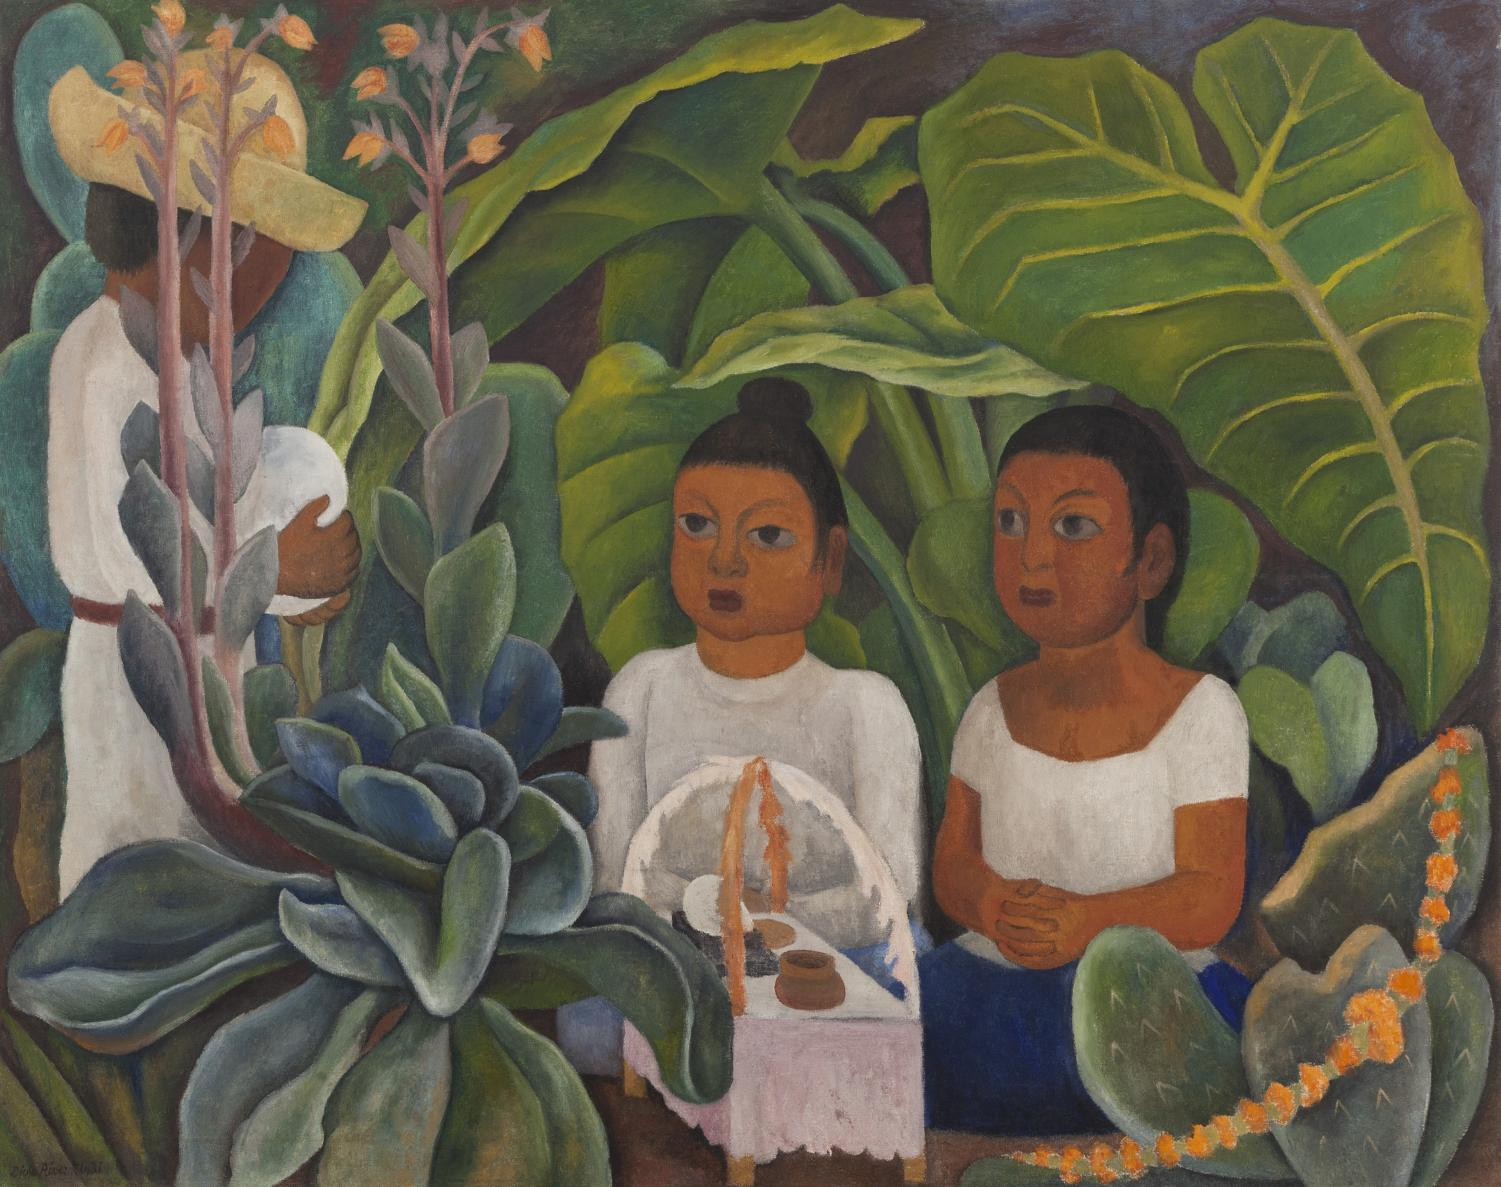 Diego Rivera (Mexican, 1886–1957), La ofrenda, 1931, oil on canvas, 48 ¾ x 60 ½ in., Art Bridges. ©2019 Banco de México Diego Rivera Frida Kahlo Museums Trust, Mexico, D.F. / Artists Rights Society (ARS), New York. Photo: 2017 Christie's Images Limited.